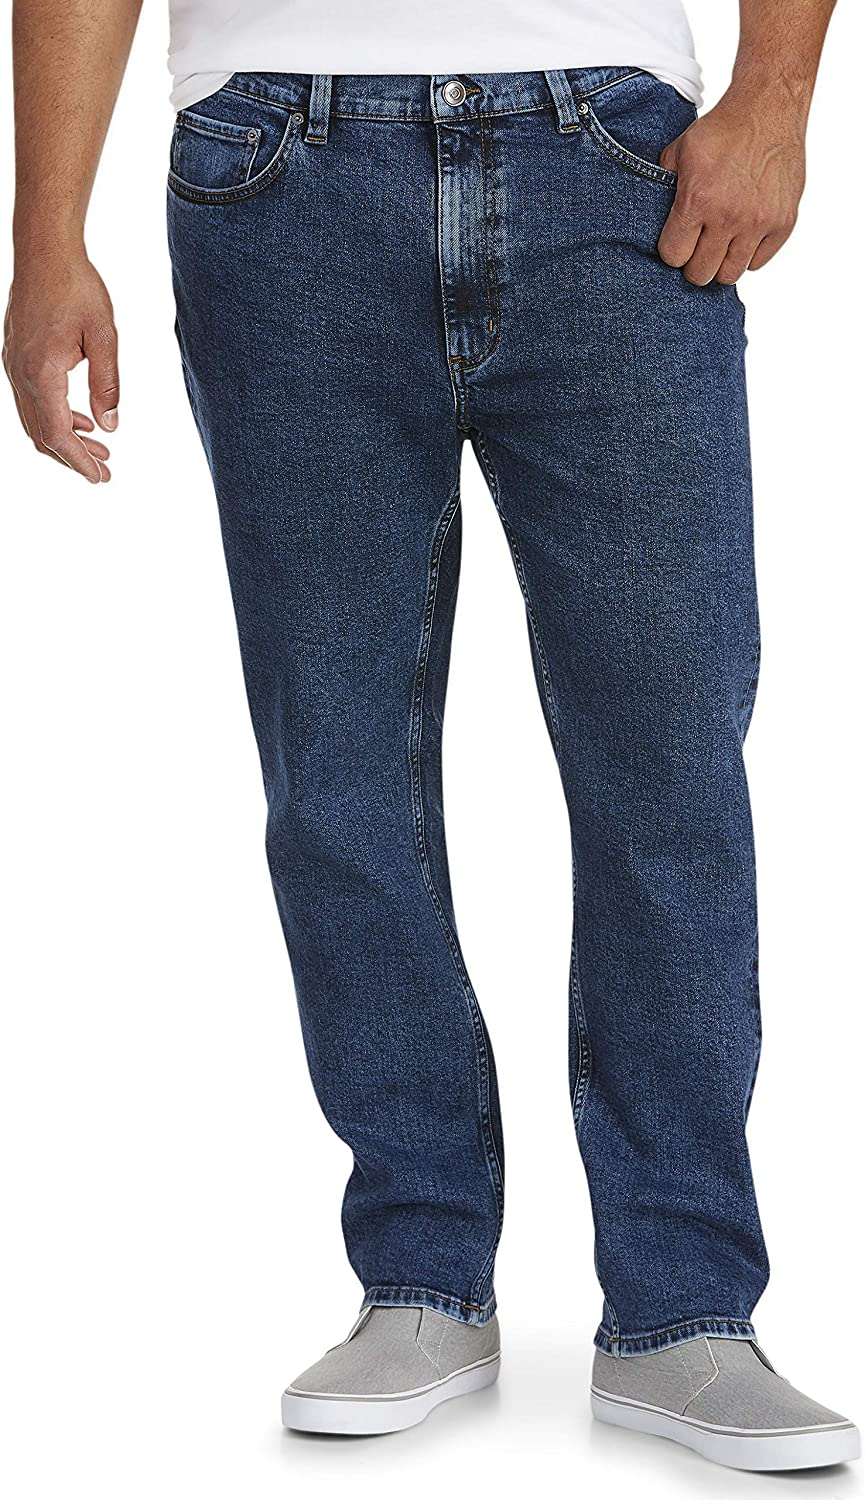 Amazon Essentials Men's Big & Tall Tapered Stretch Jean Fit by DXL